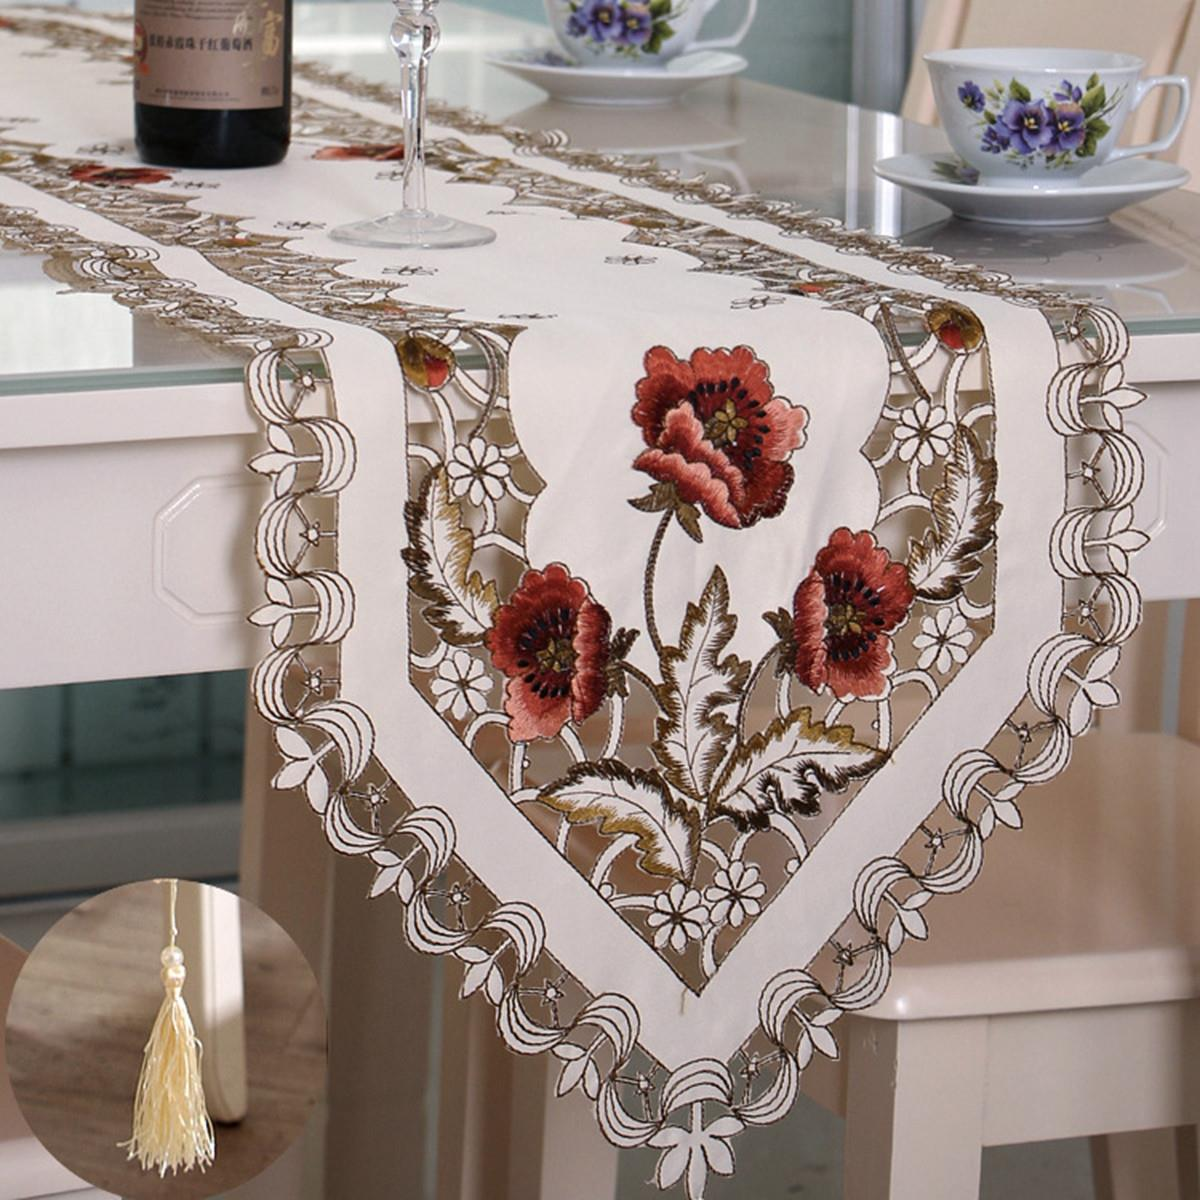 Elegant Polyester Embroidery Table Runner Handmade Embroidered Flower Floral Cutwork Simple Home Table Cloth Covers Runners(China (Mainland))